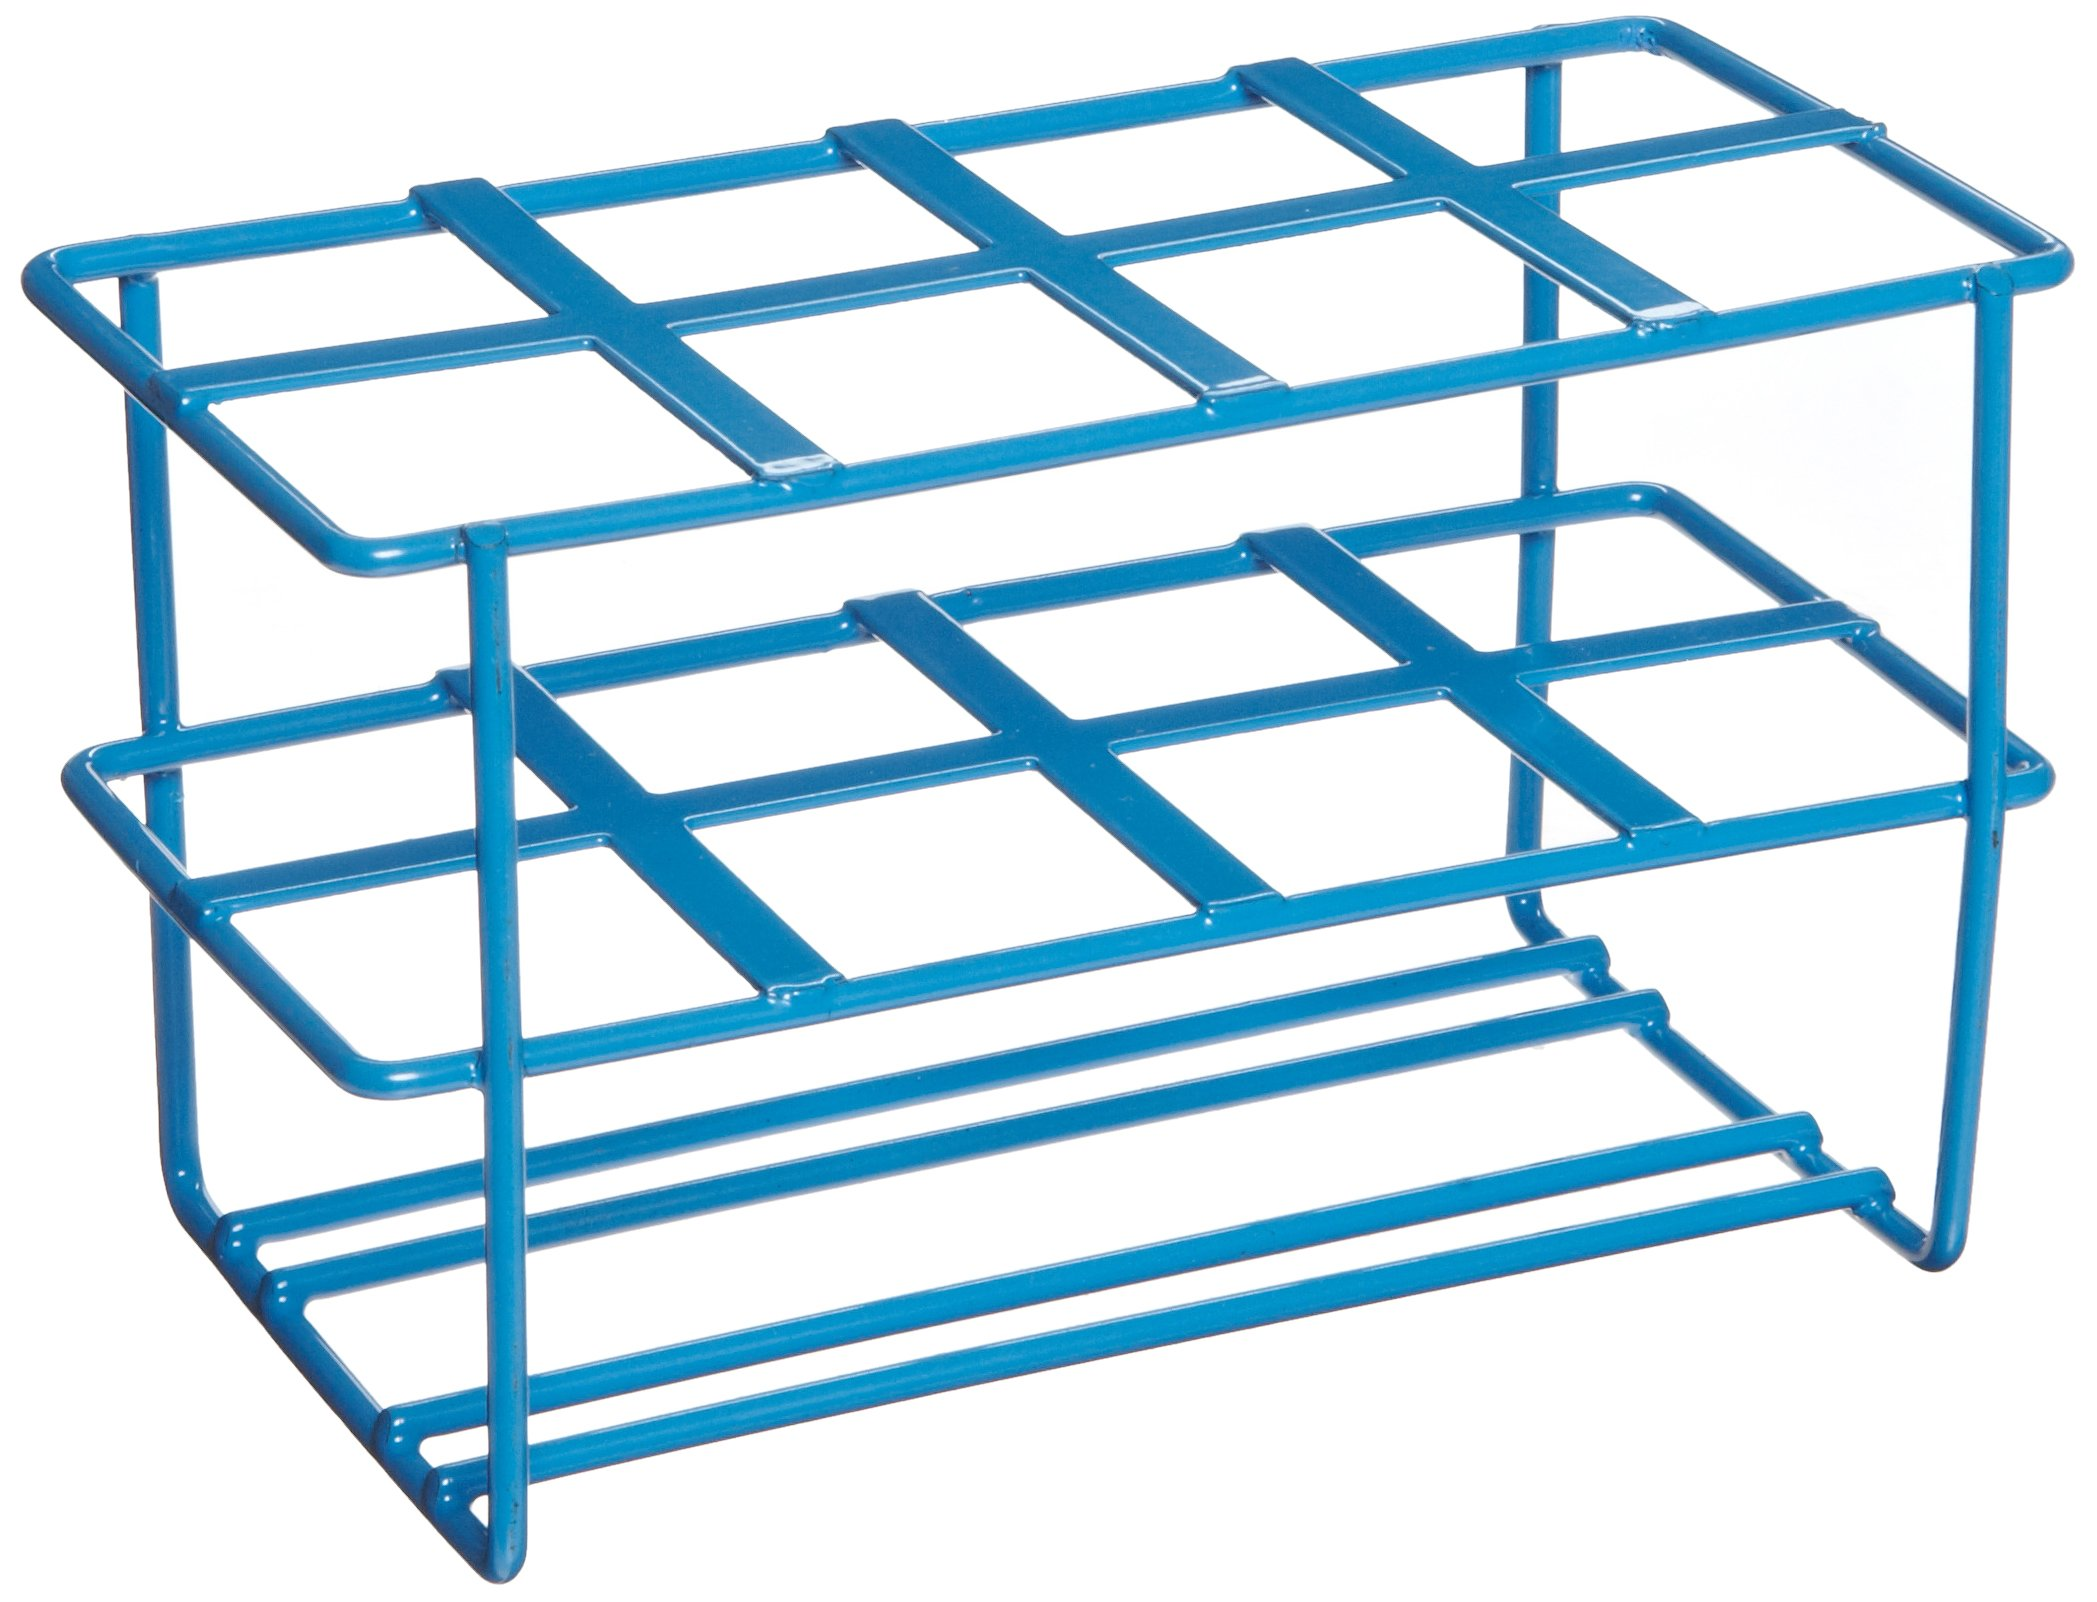 Heathrow Scientific HD232461 Steel Epoxy-Coated 8-Well Wire Racks for 50mL Tubes, Blue by Heathrow Scientific